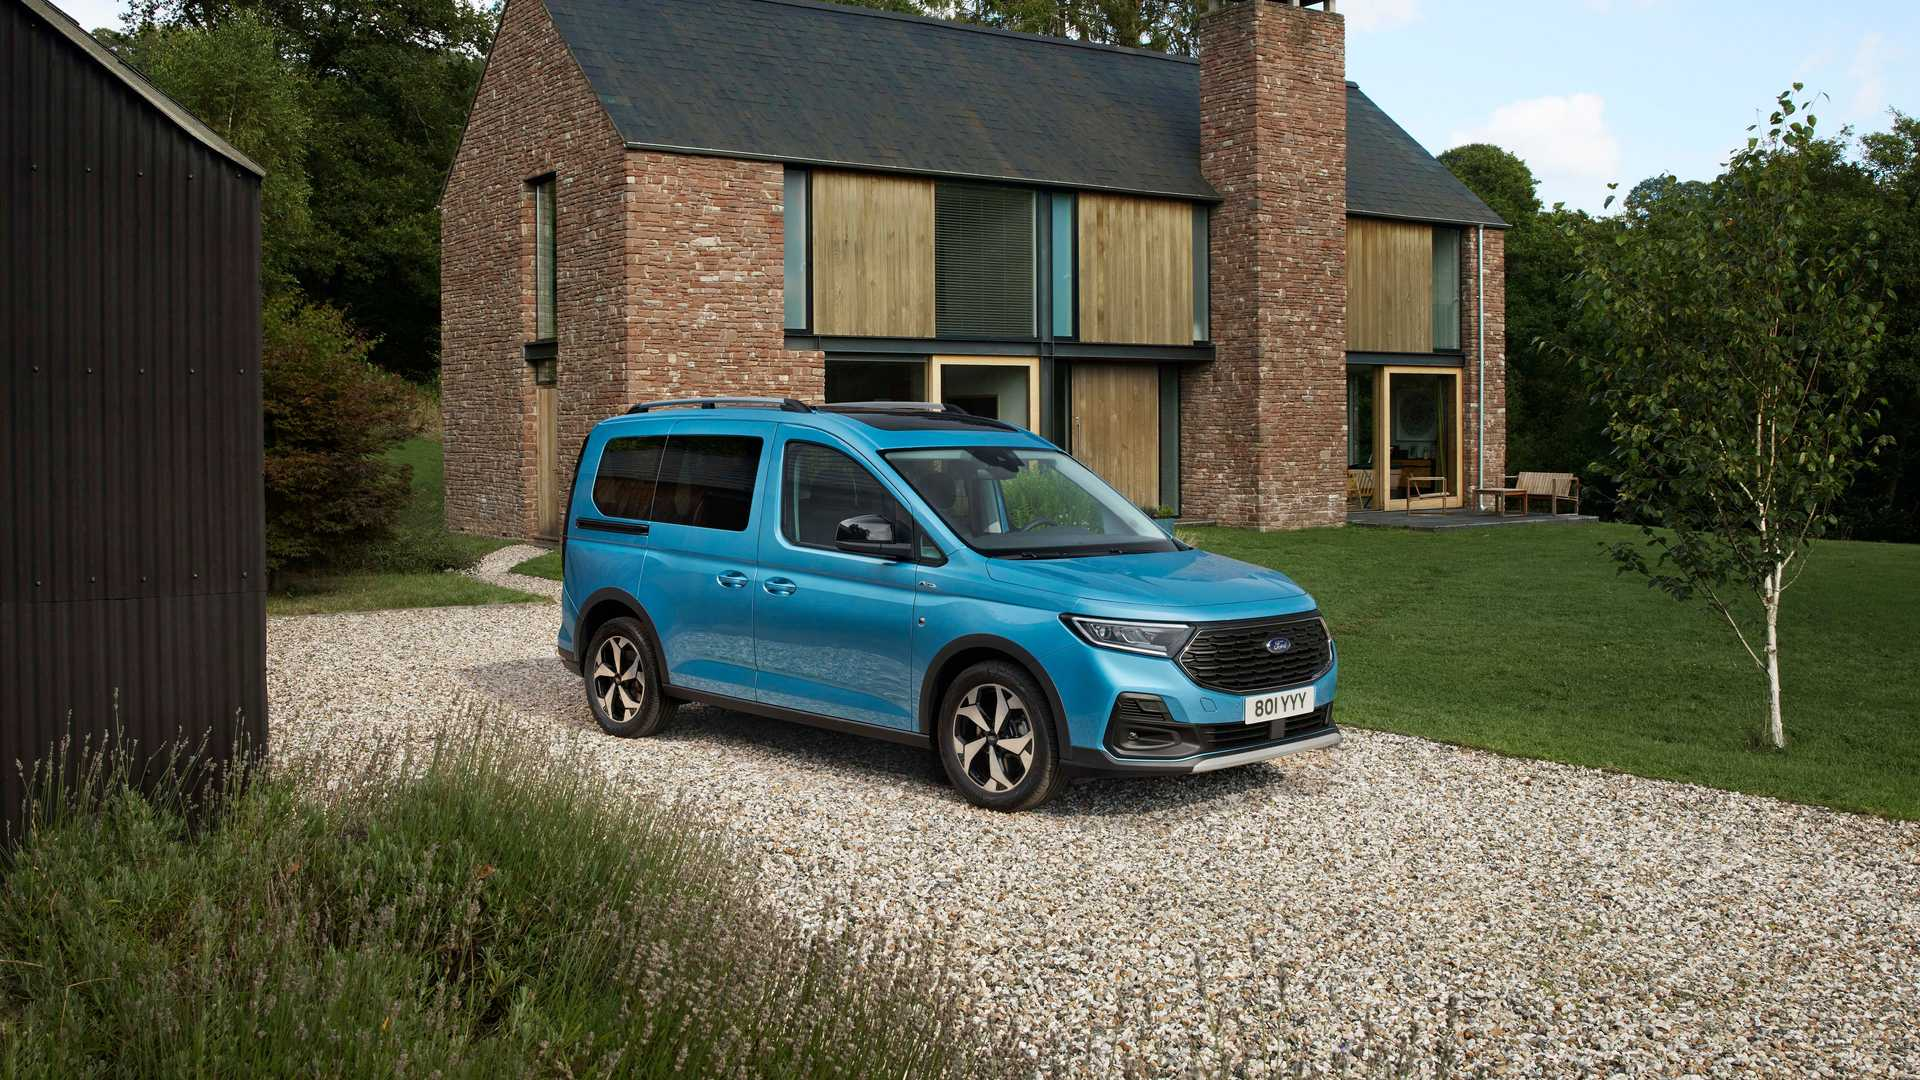 Ford Europe has unveiled the next generation of the Tourneo Connect minivan, only to reveal that it is a Volkswagen Caddy in disguise.